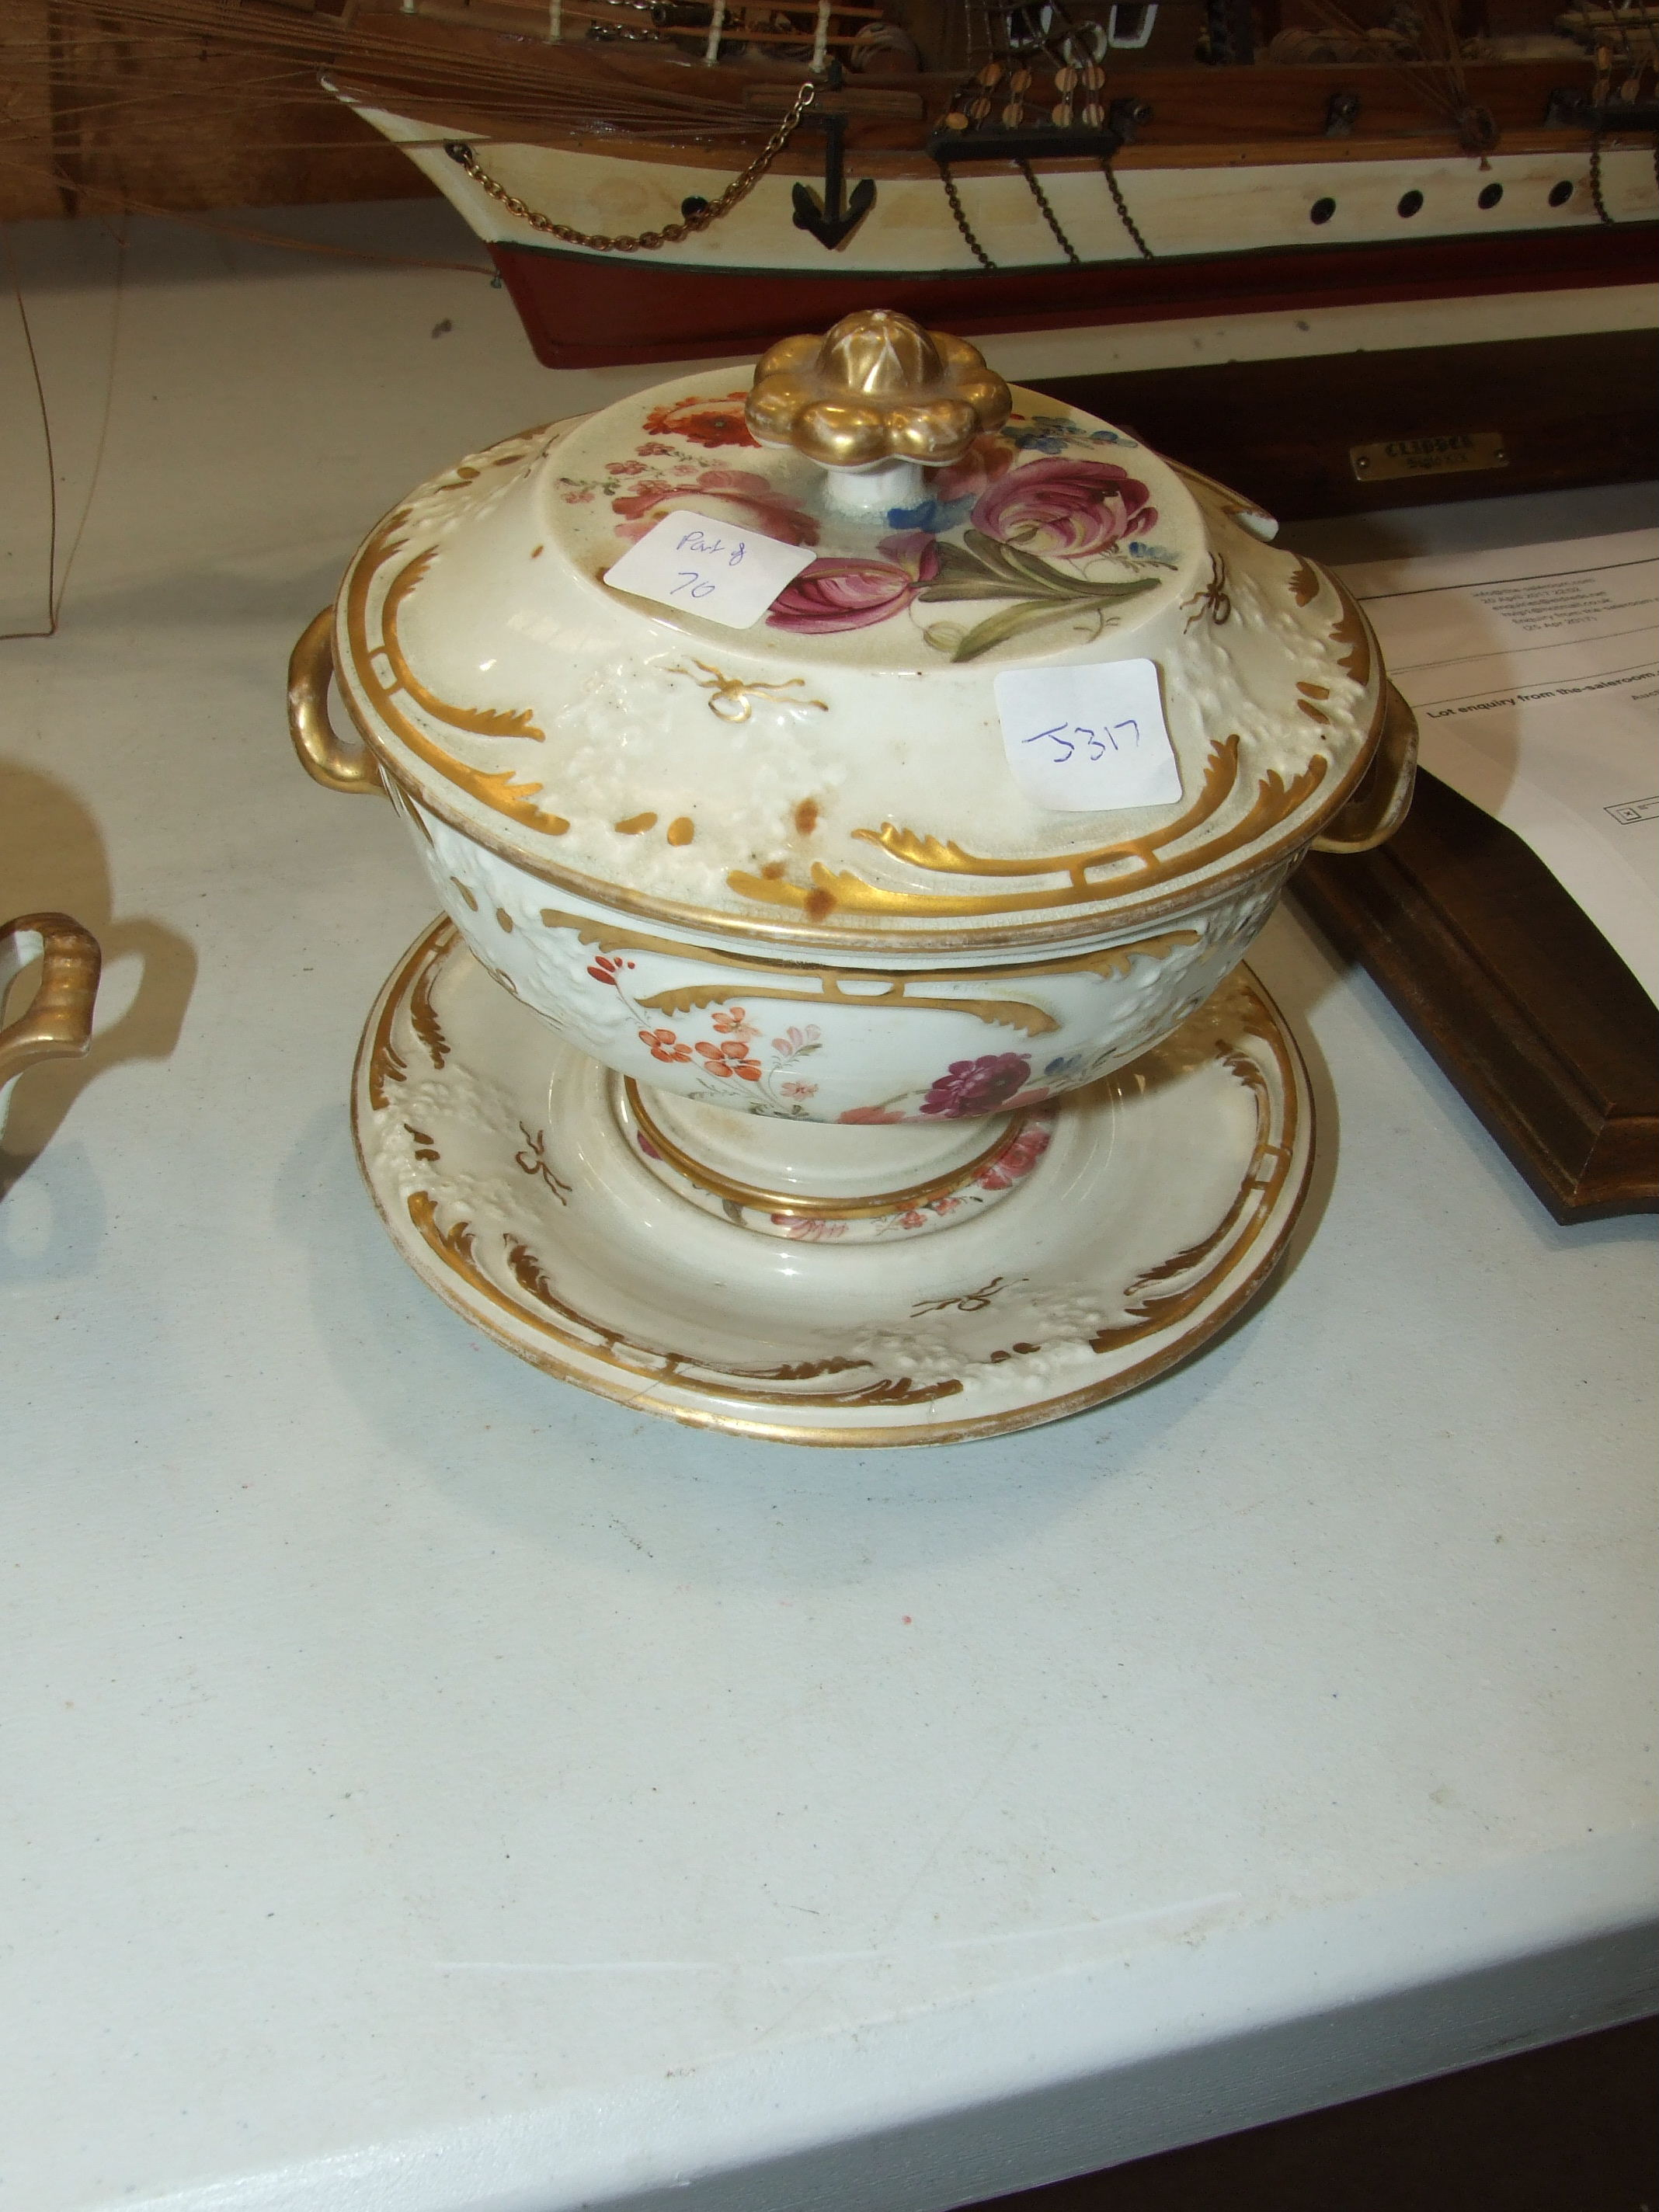 A 19th century porcelain sugar bowl and cover painted with roses and gilt, 11cm high, a Wedgwood - Image 2 of 8